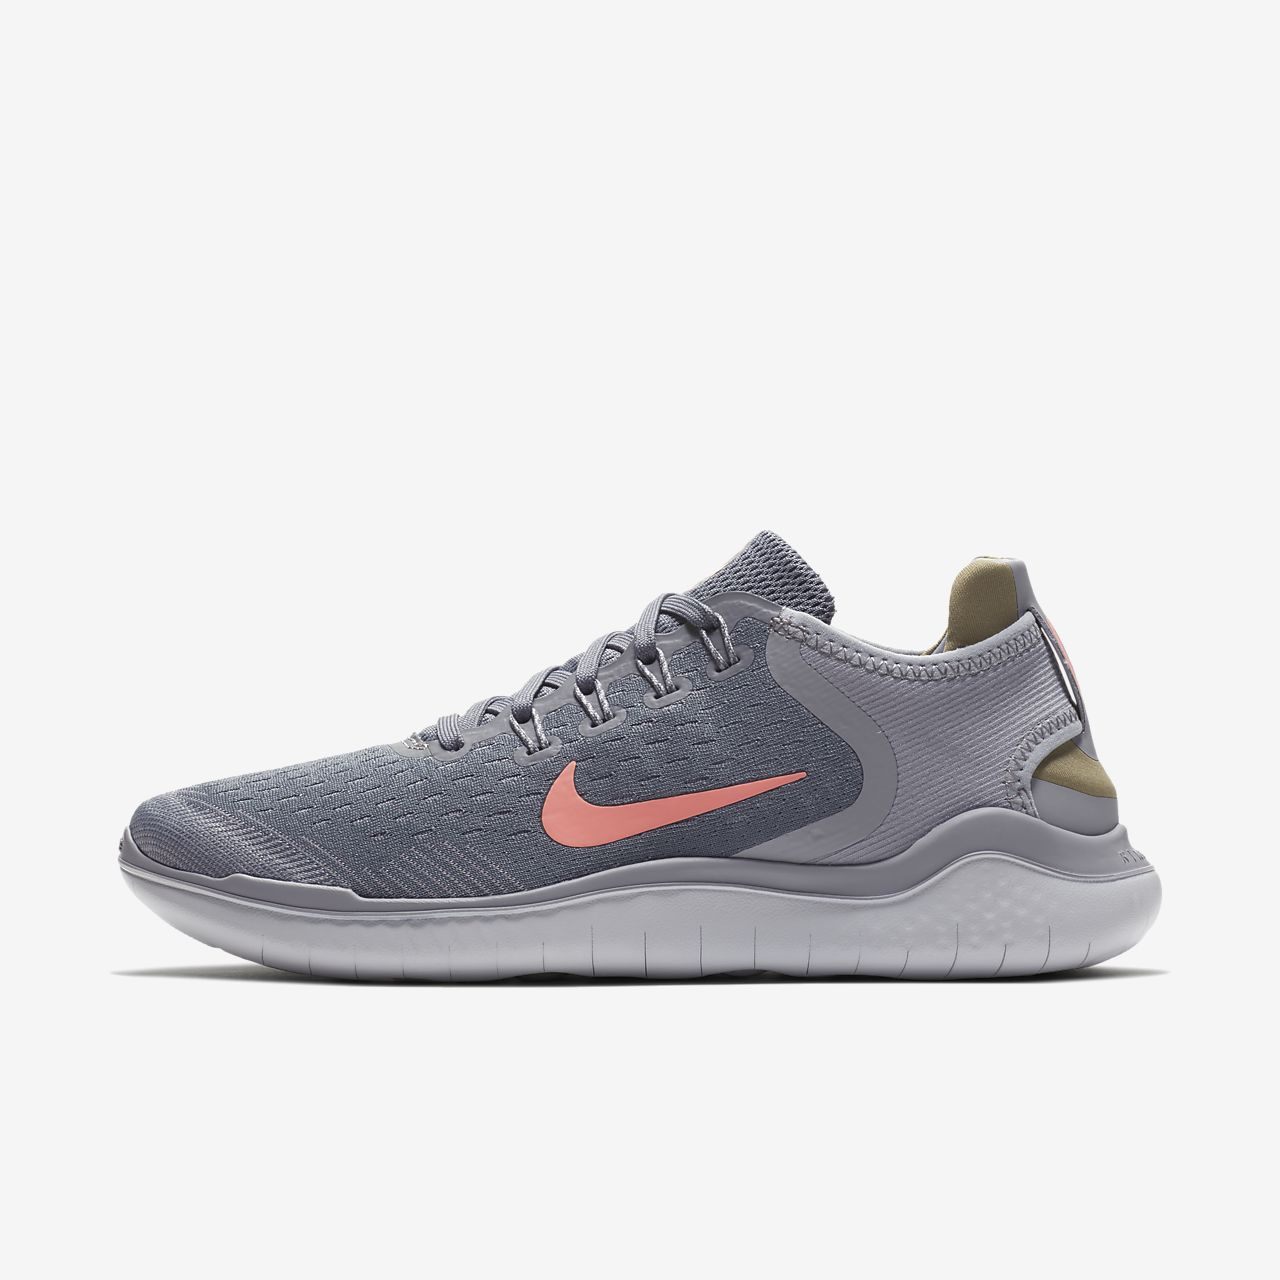 NIKE Damen Laufschuh Free RN 2018 orange 8f6Dj